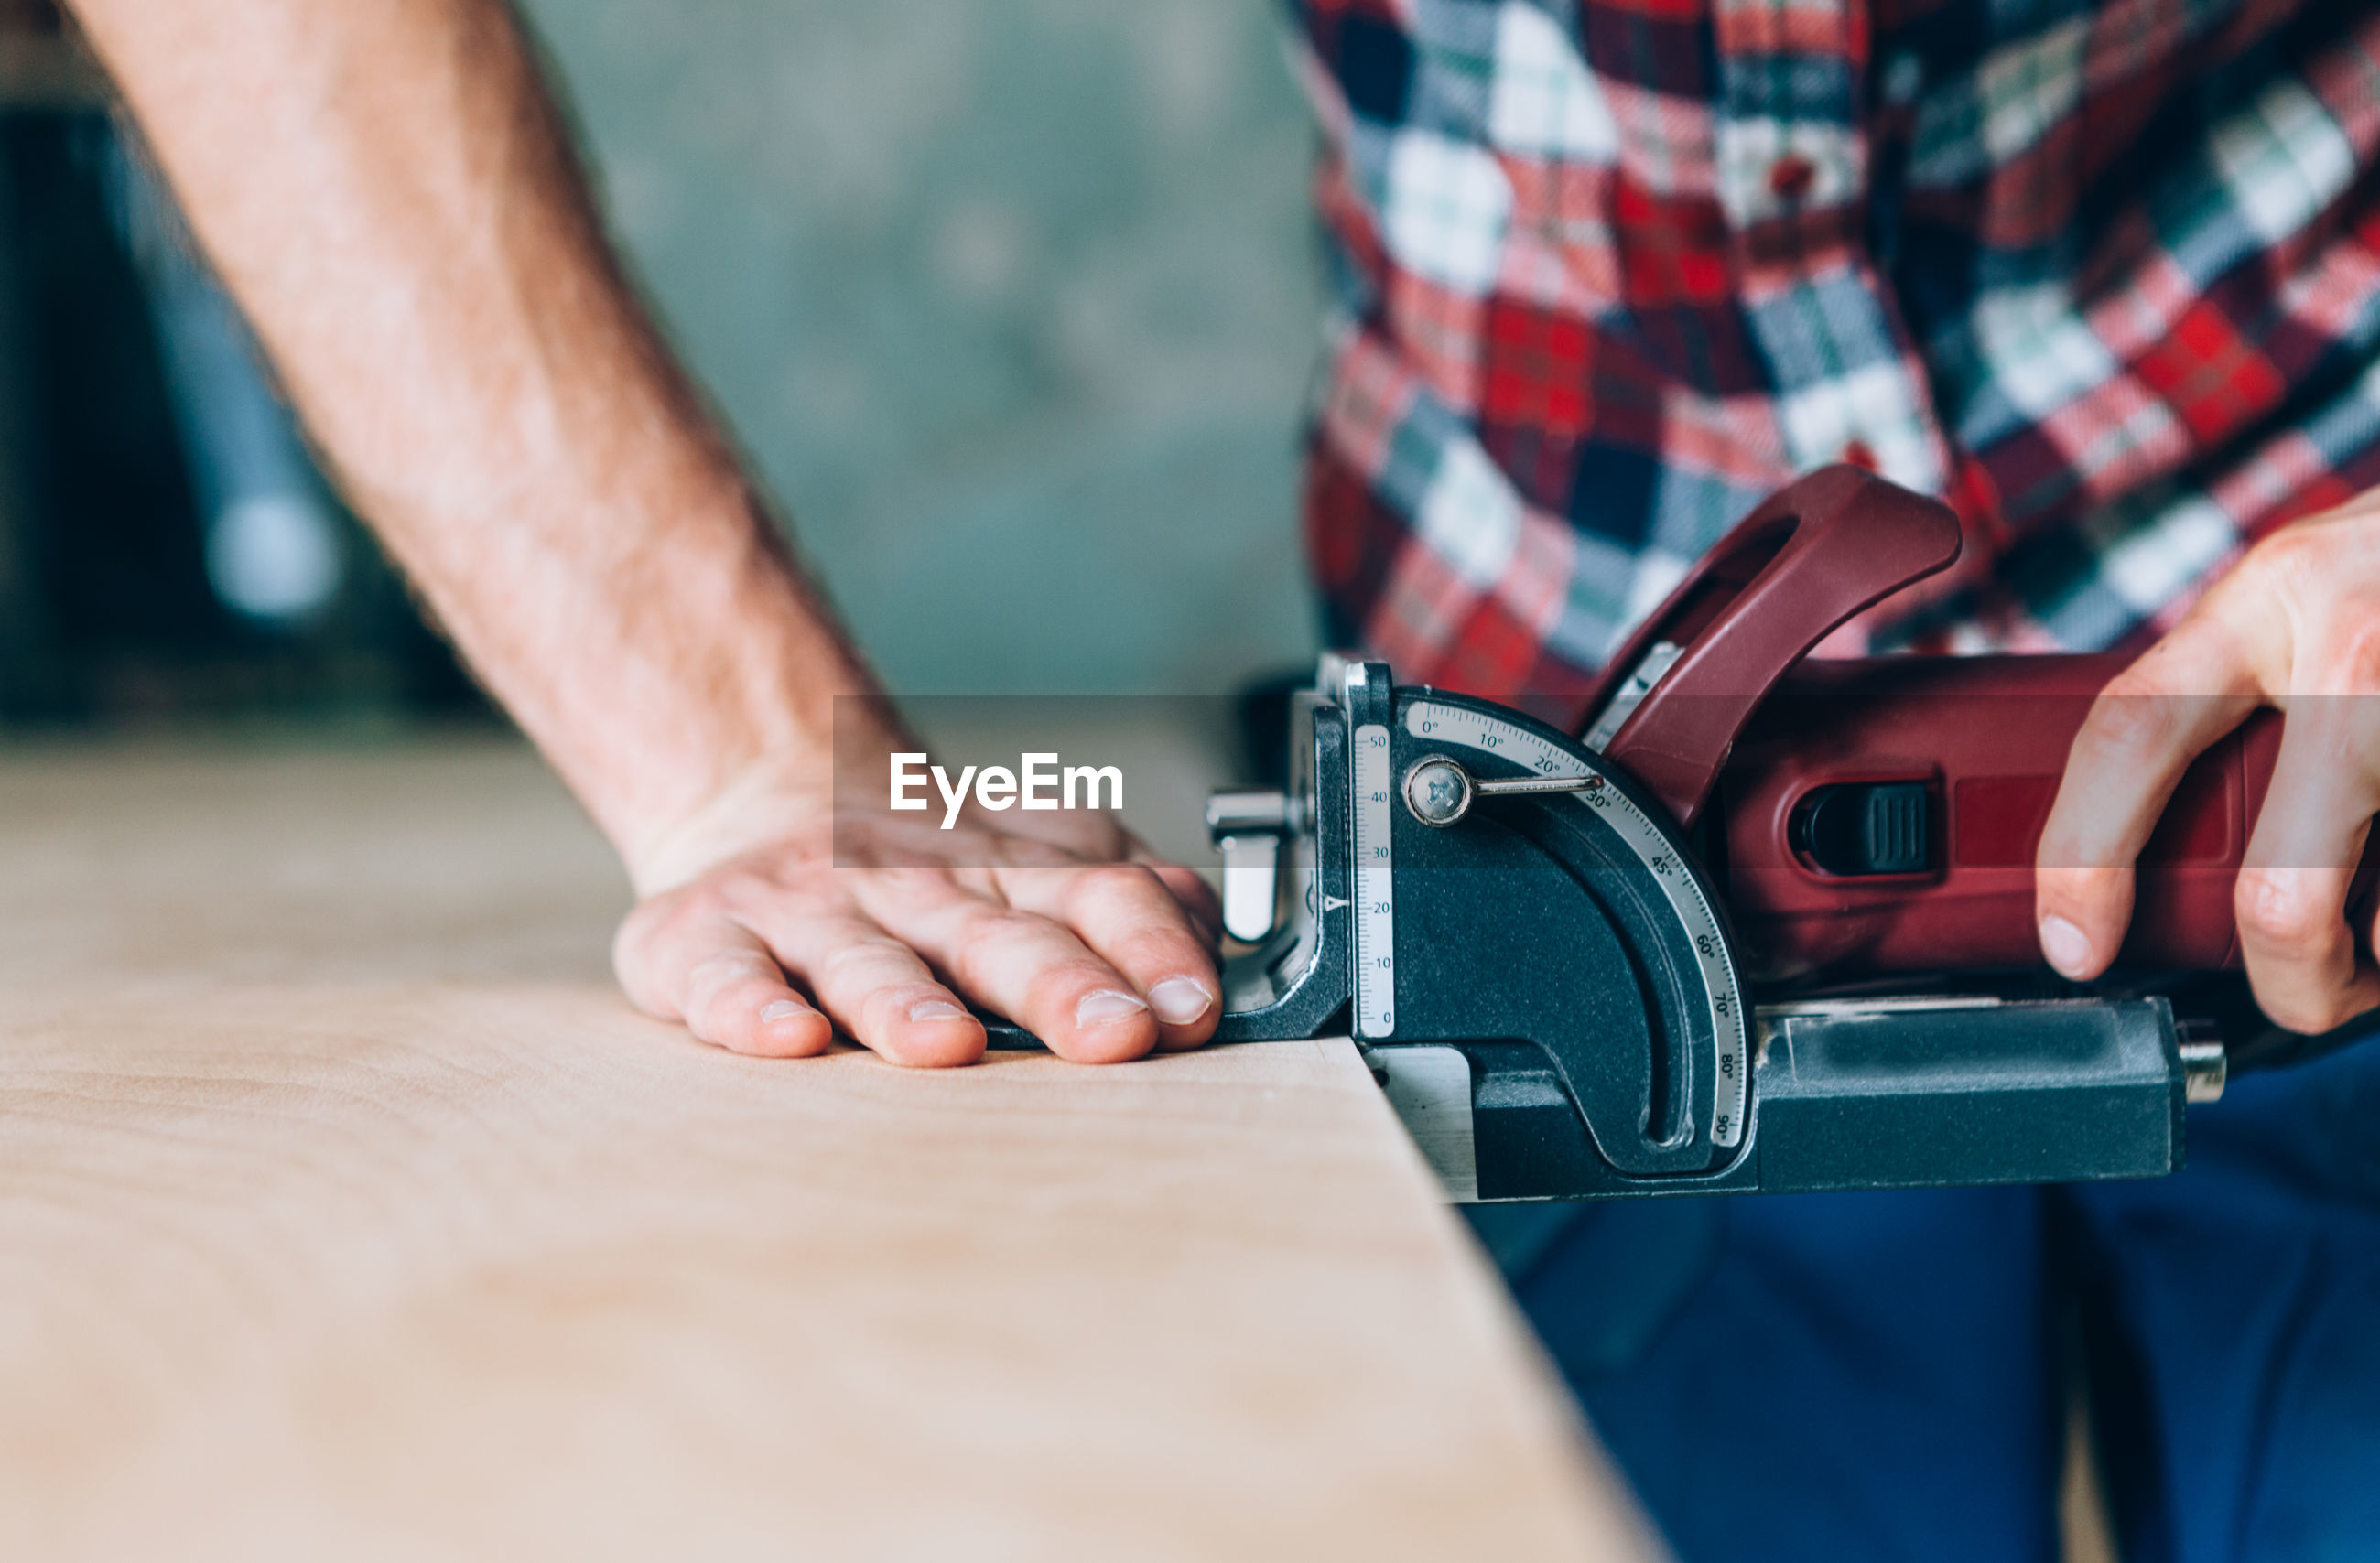 Midsection of carpenter using machinery while working in carpentry workshop